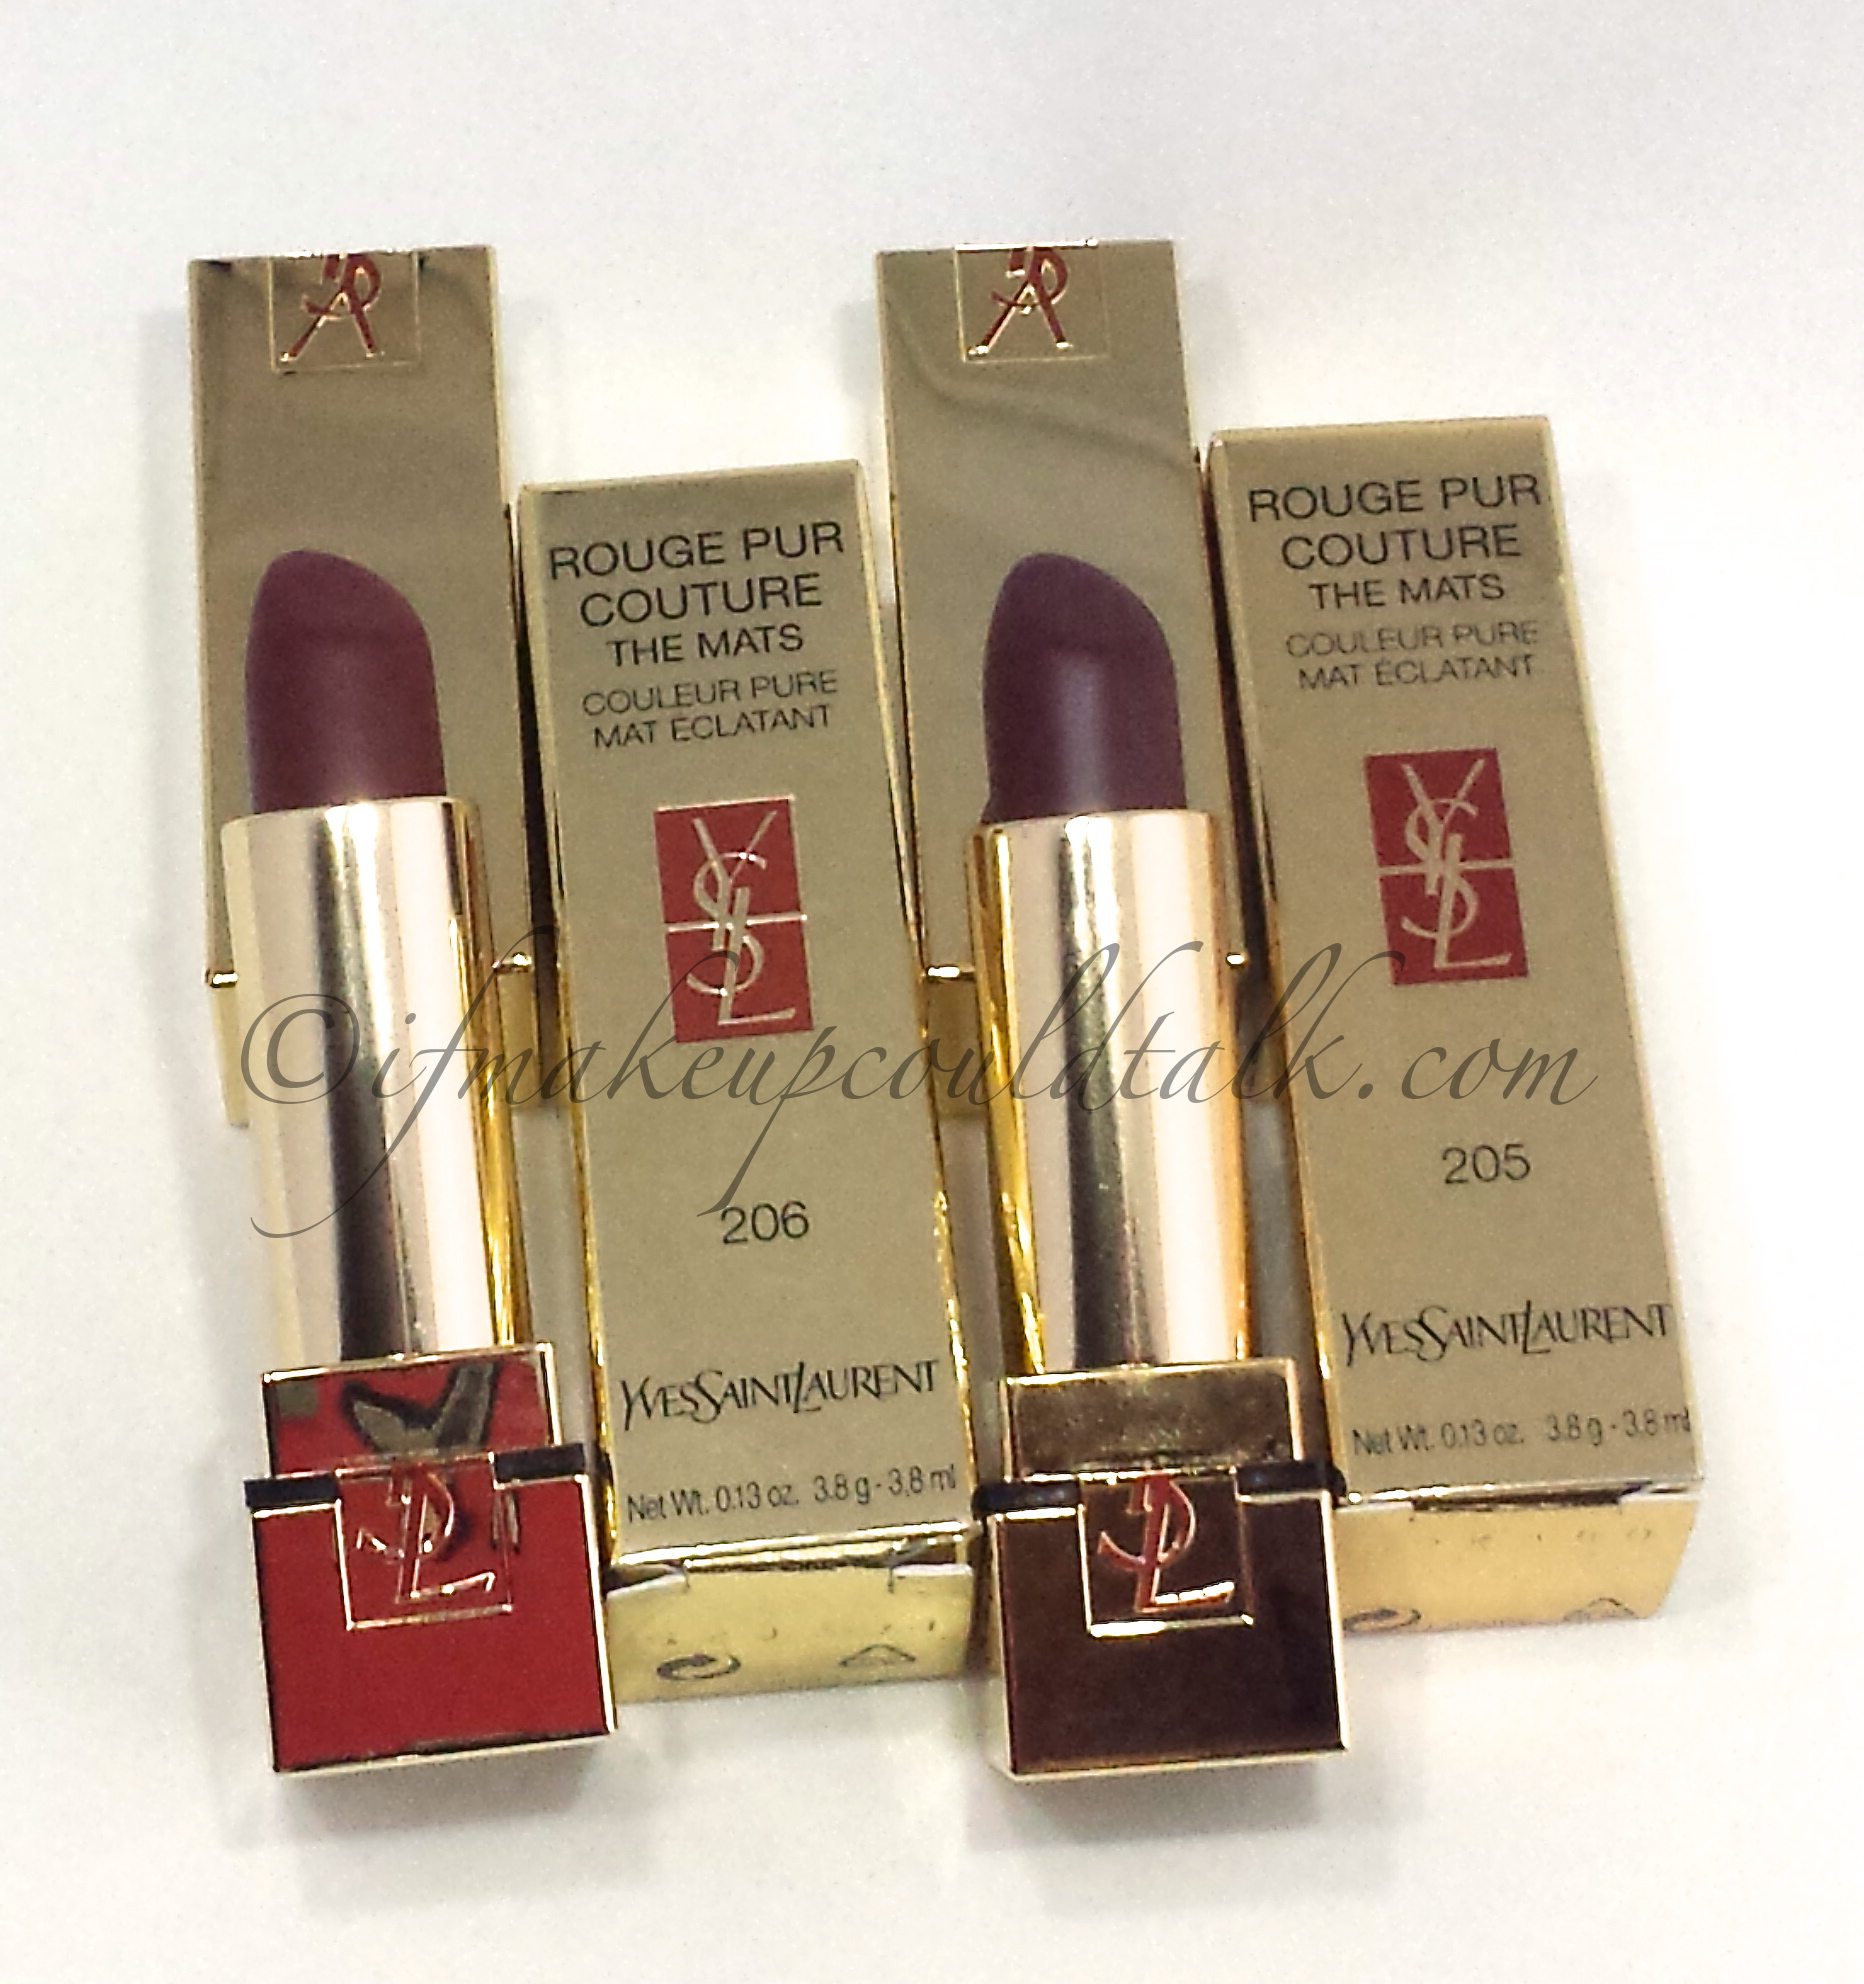 Ysl Rouge Pur Couture The Mats 206 And 205 Review And